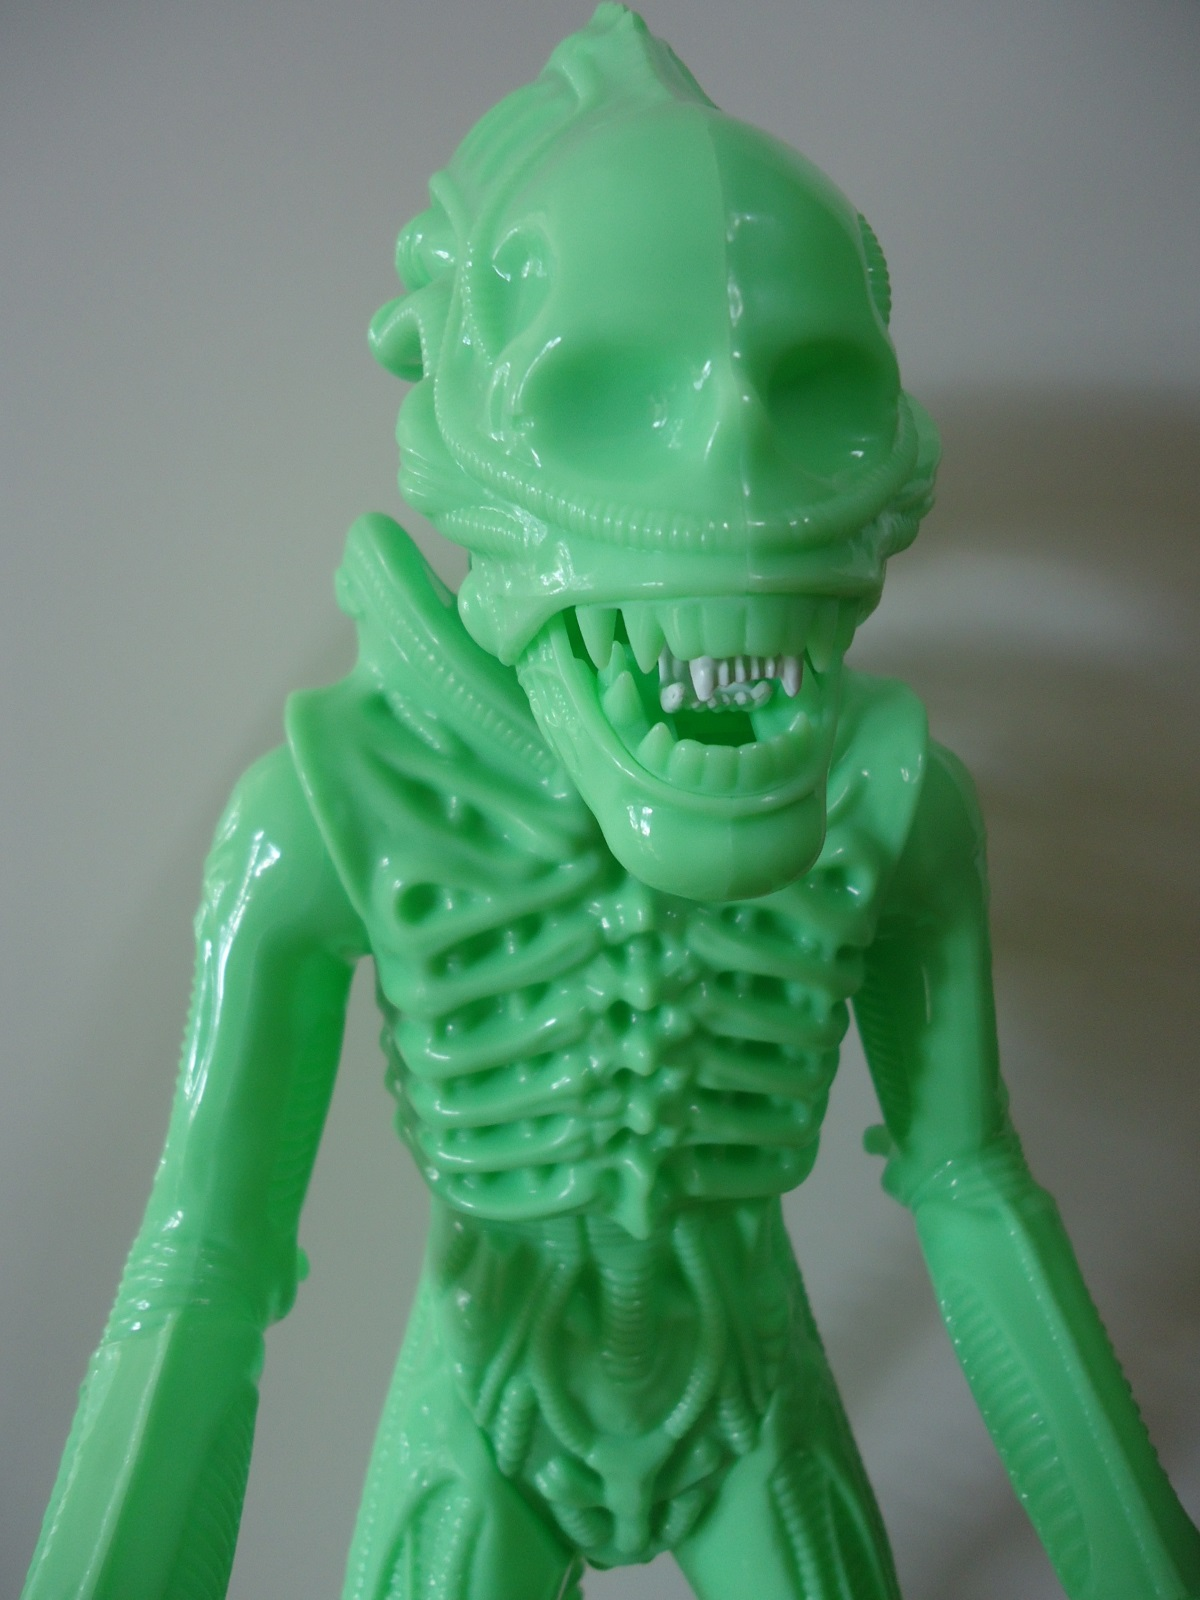 24 inch tall Gentle Giant glow in the dark ALIEN action figure without carapace.